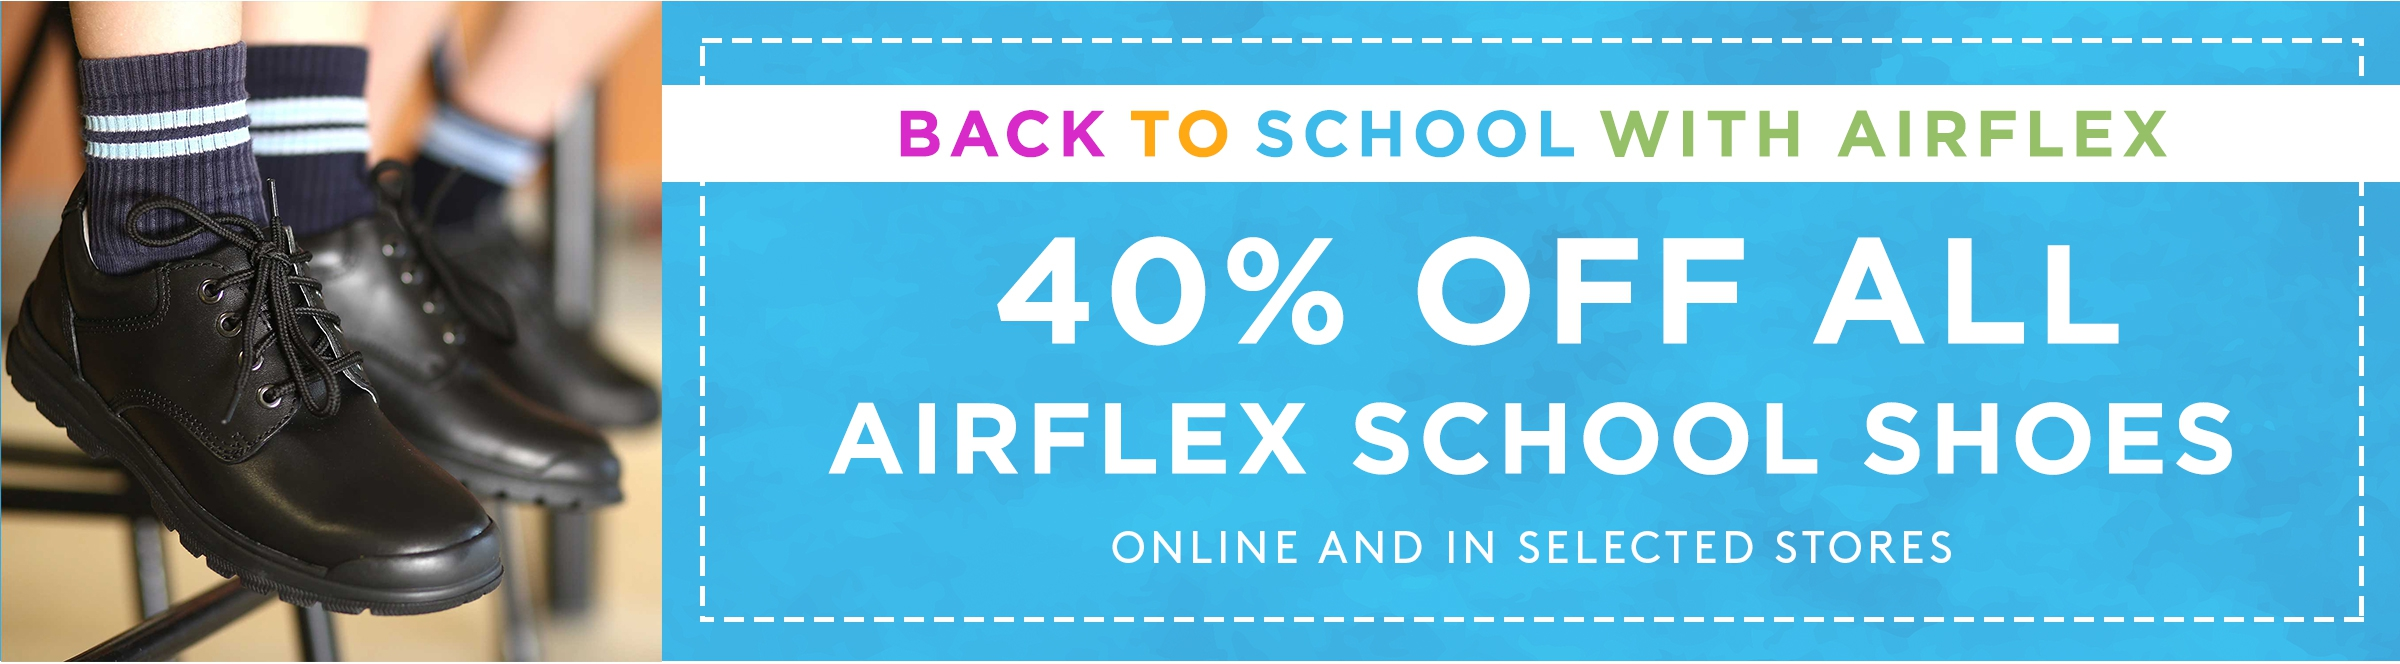 40% OFF ALL SCHOOL SHOES